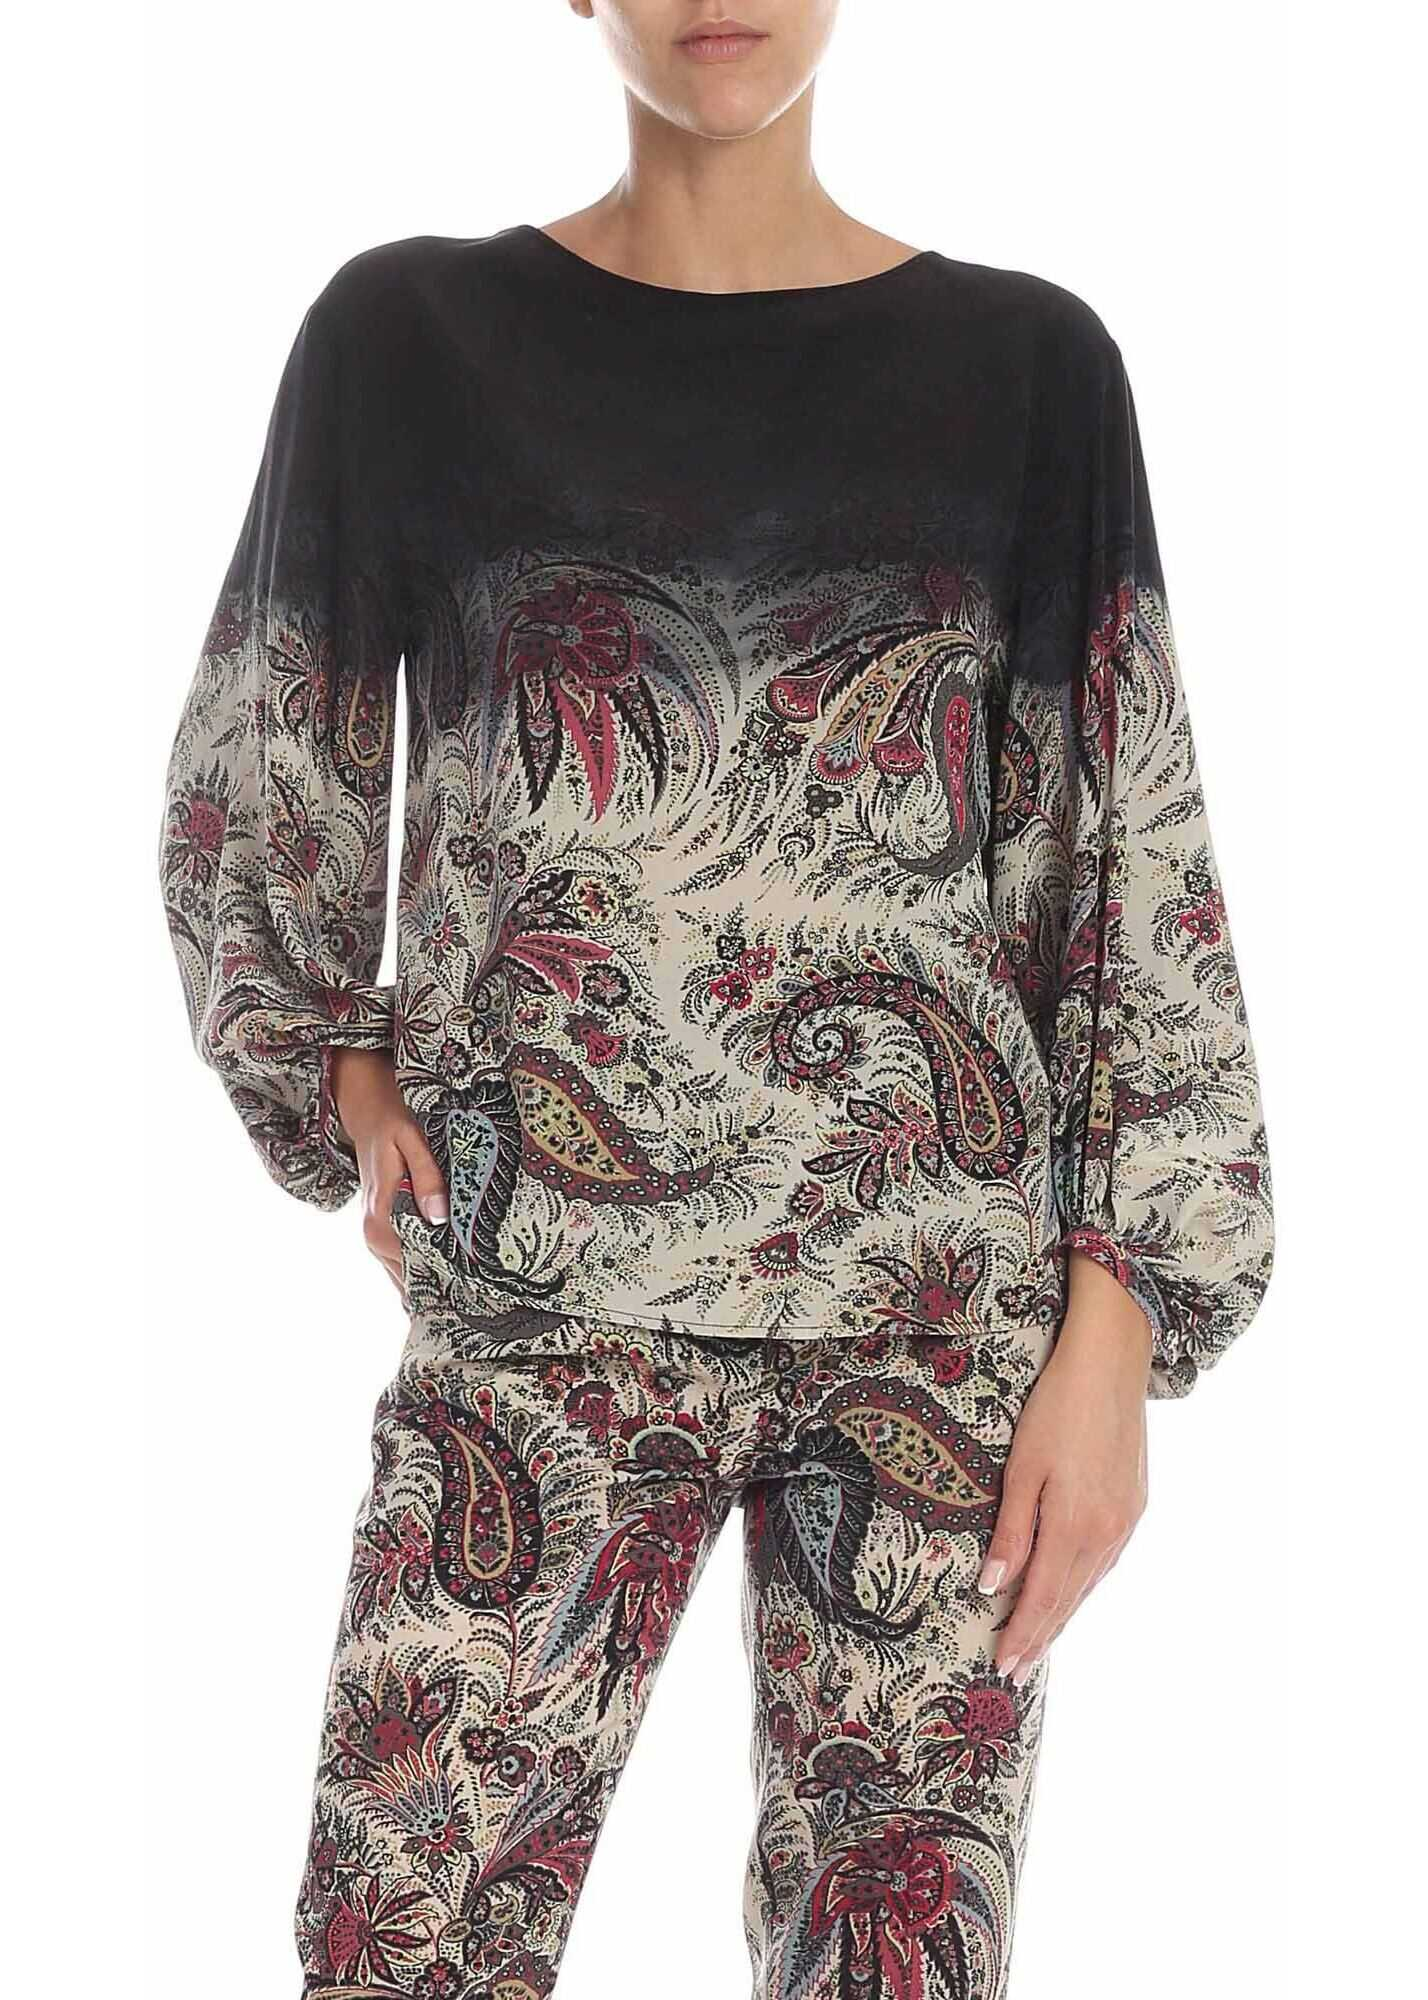 ETRO Black And Ivory Blouse With Floral Print